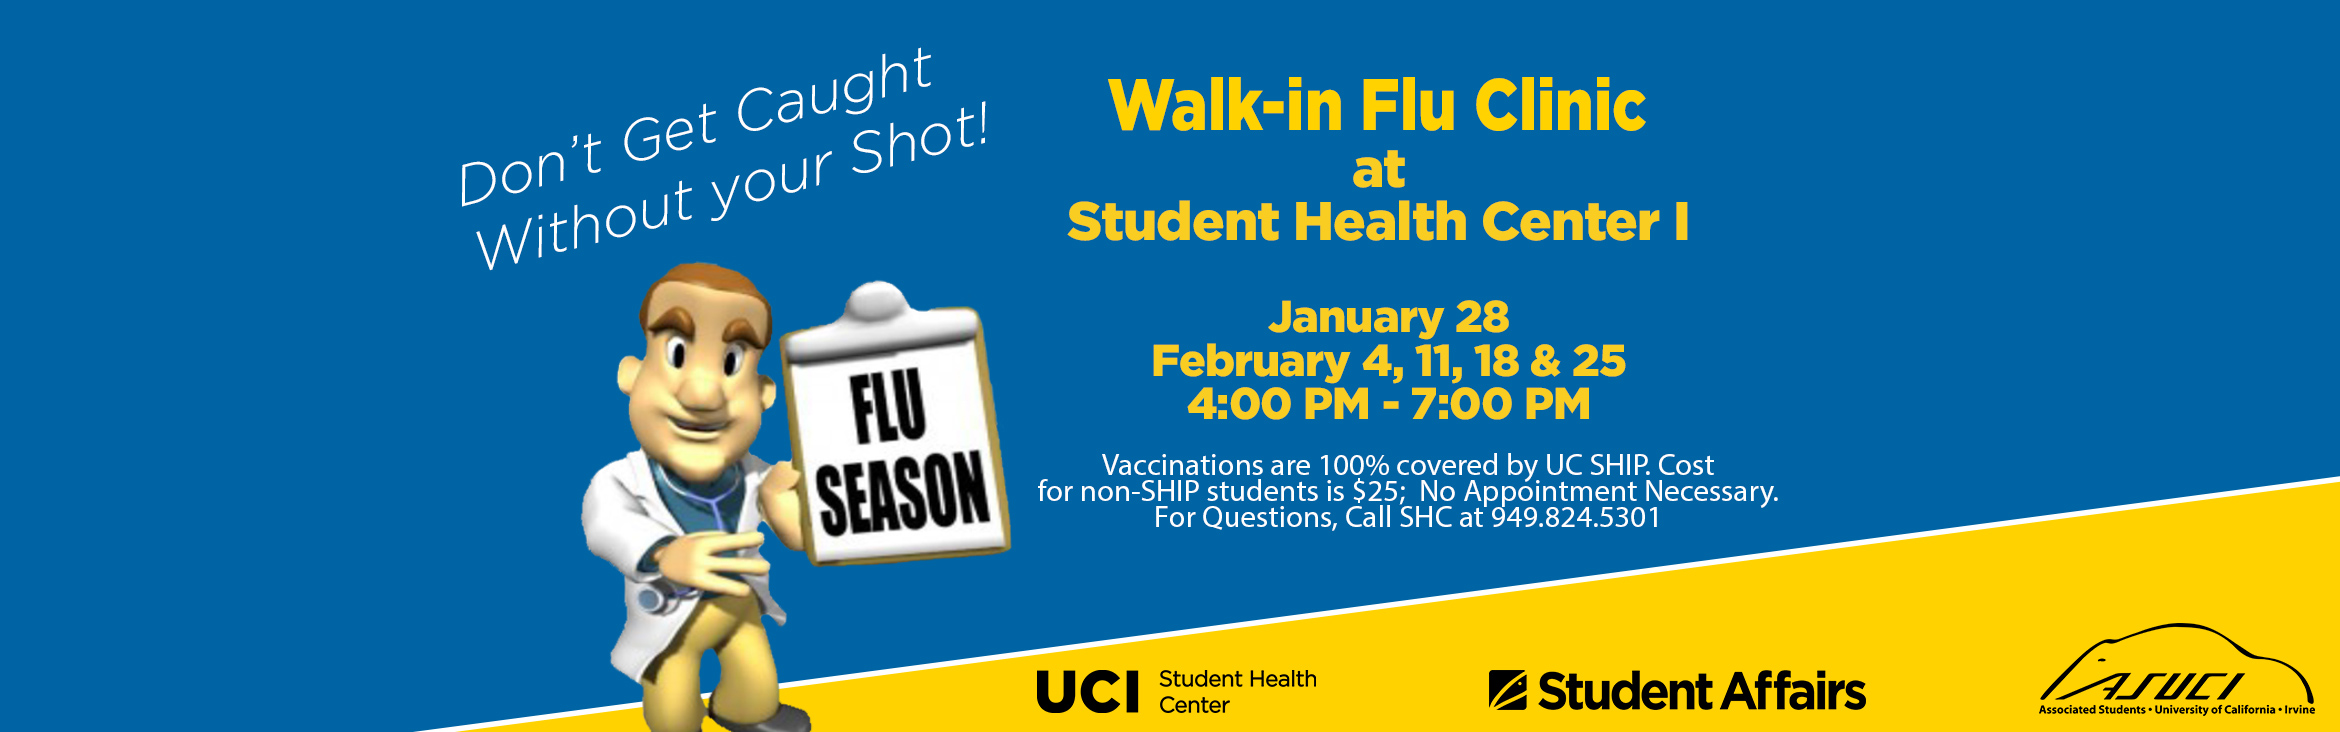 Walk-In Flu Clinic at SHC (4-7pm: no appointment necessary)